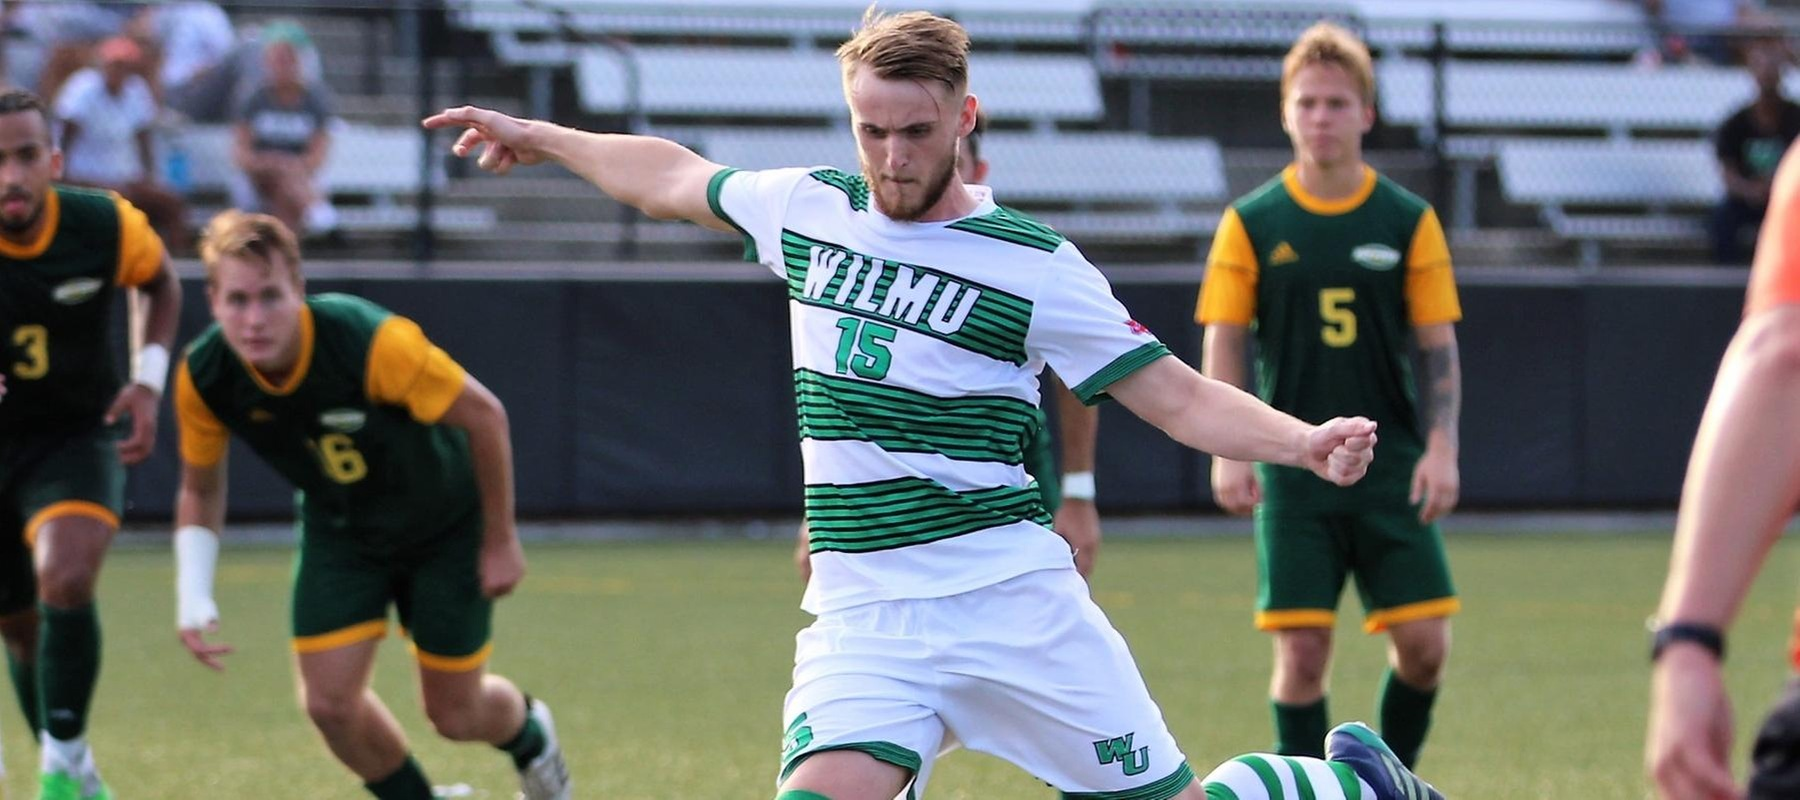 Copyright 2018; Wilmington University. All rights reserved. Photo of Will Stone taking the PK in the 85th minute. Photo by Keara McCarthy. October 10, 2018 vs. LIU Post.